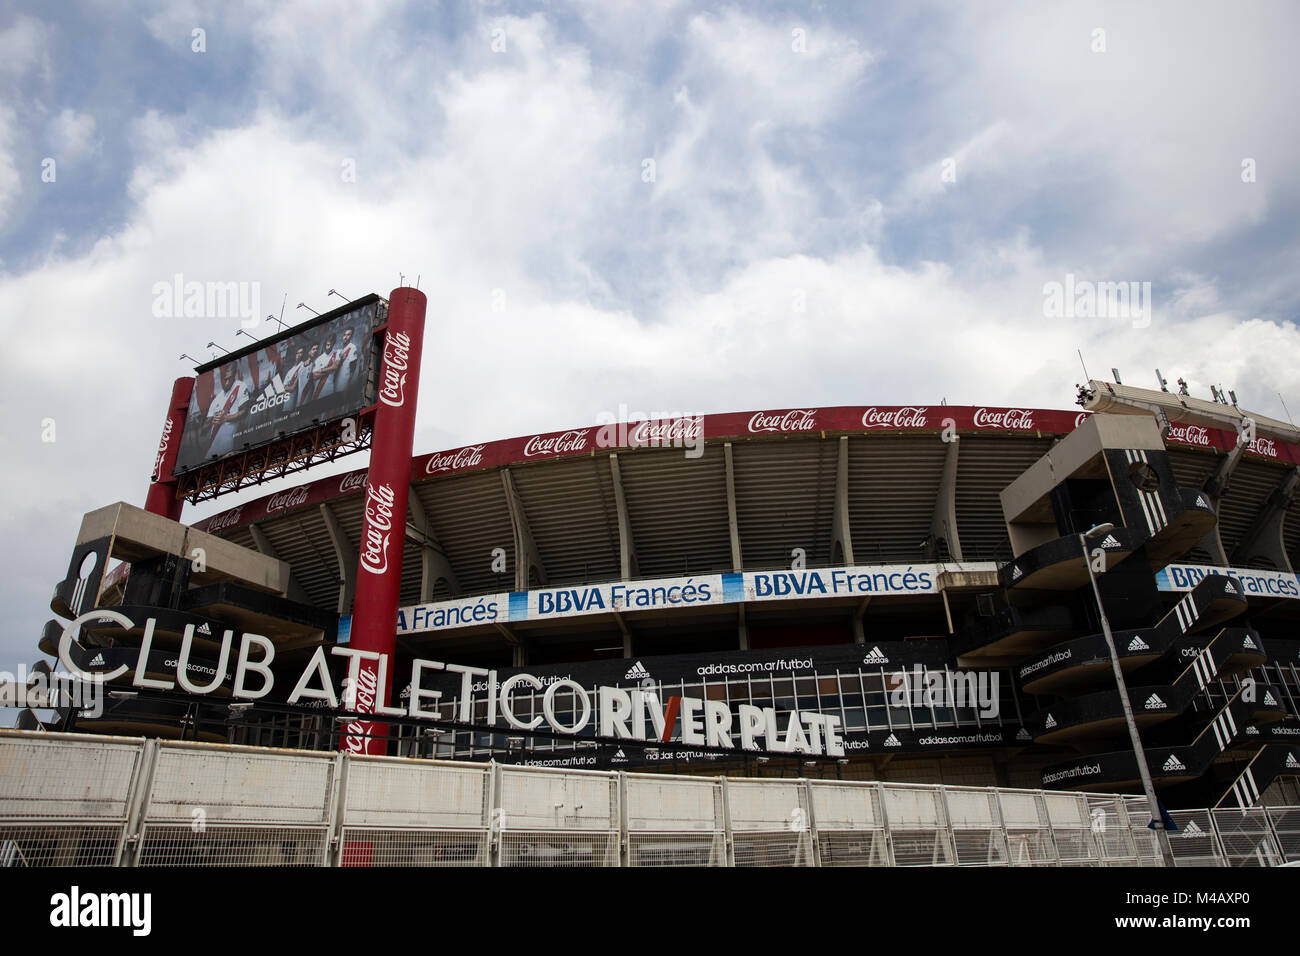 River Plate: River Plate Stock Photos & River Plate Stock Images